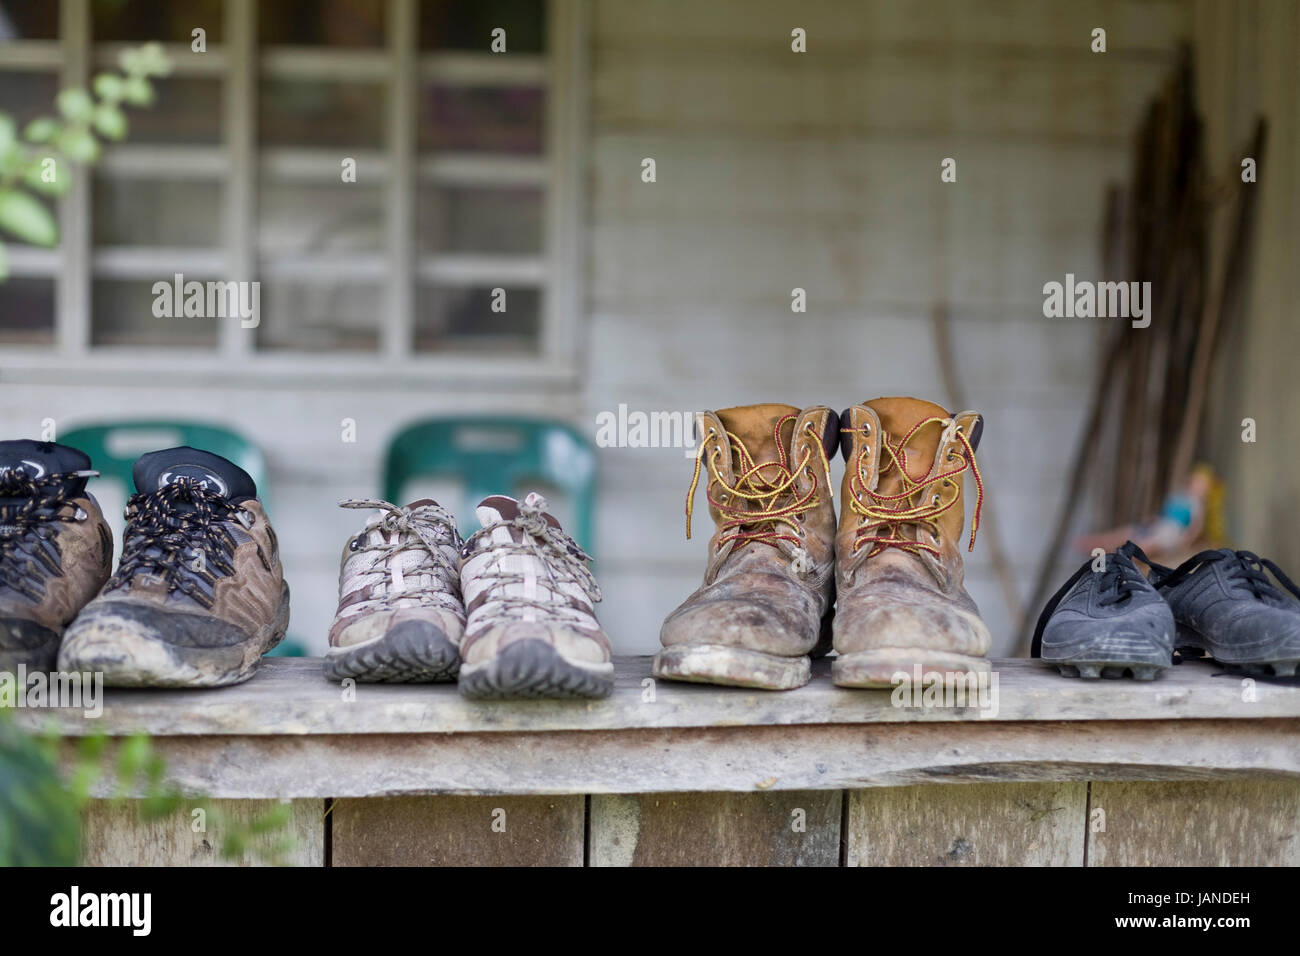 Muddy boots on a patio - Stock Image